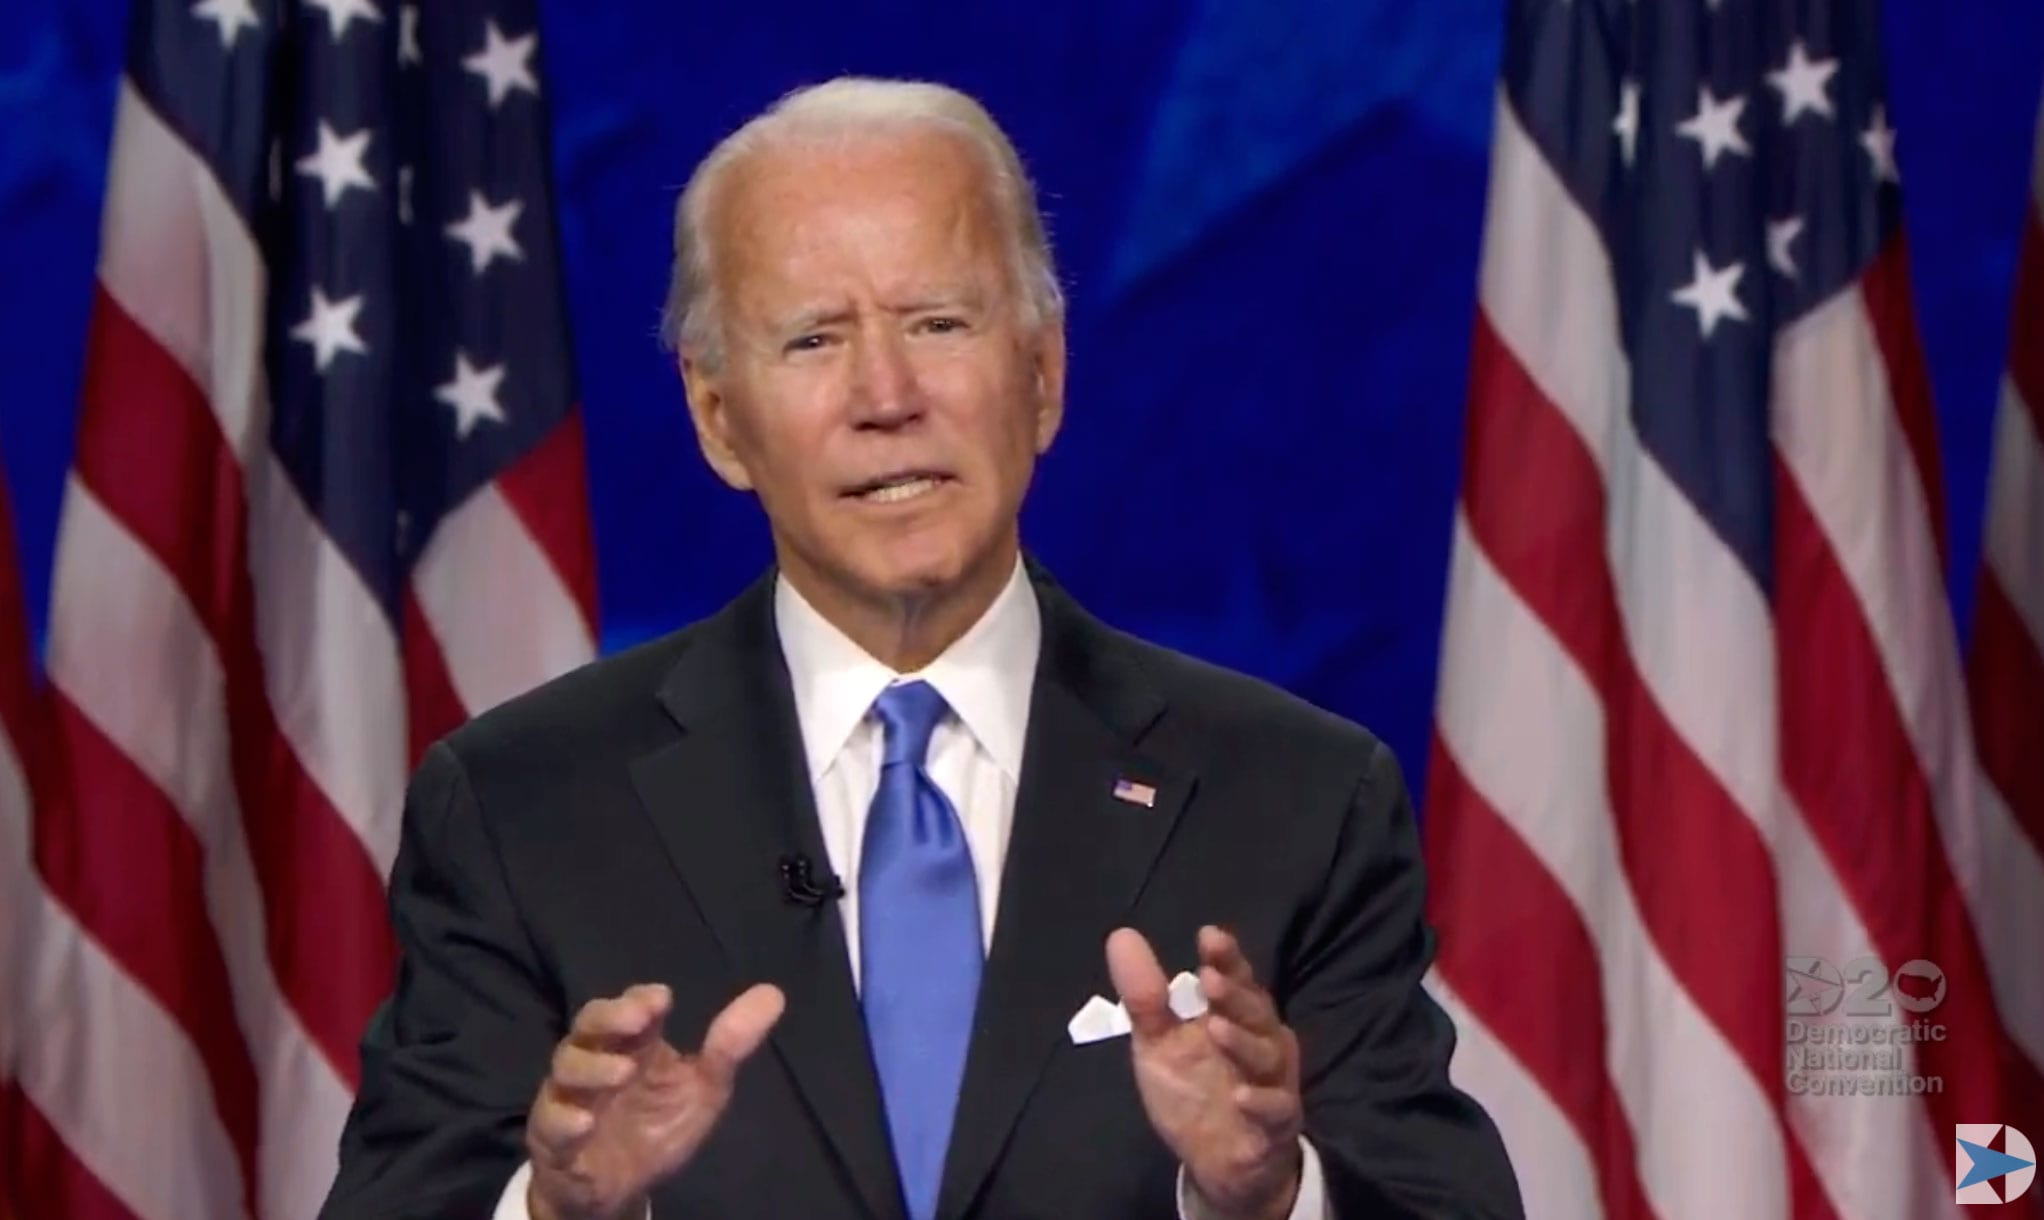 Joe Biden accepts Democratic nomination with pledge to serve 'all Americans'